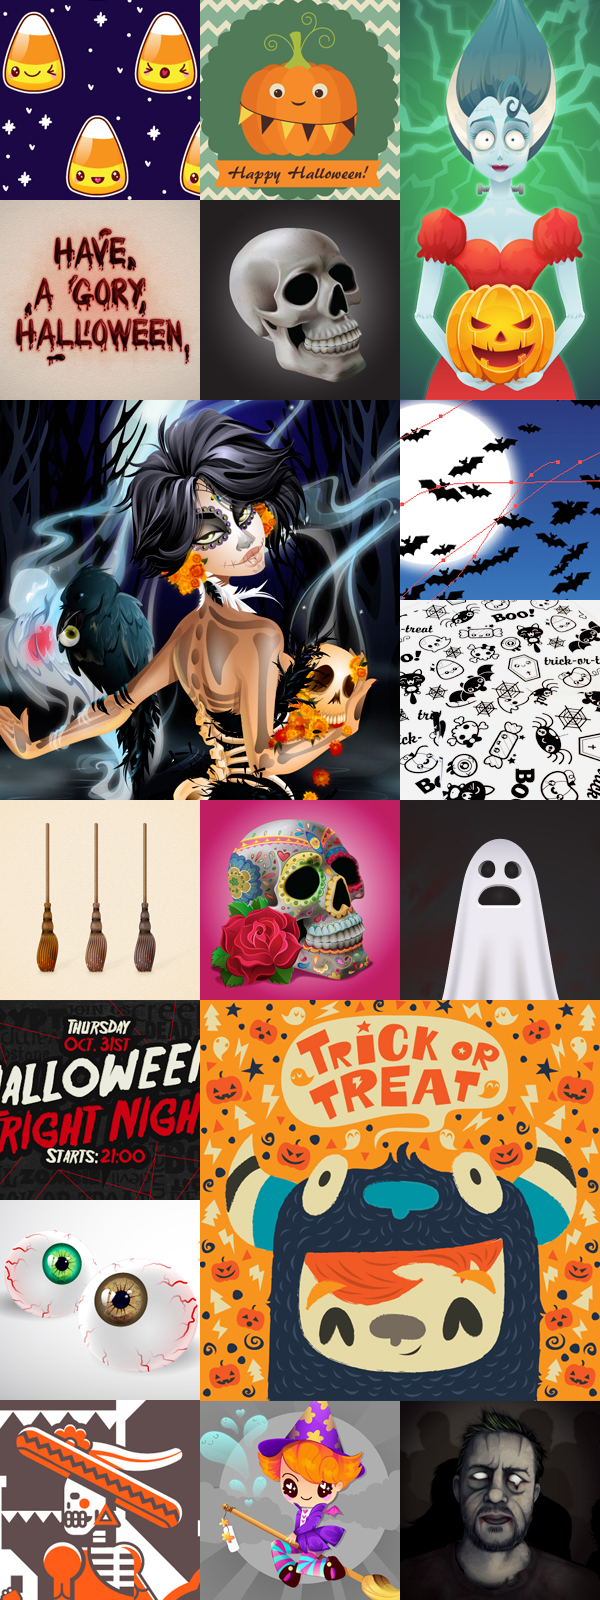 Halloween and Day of the Dead on Tuts+